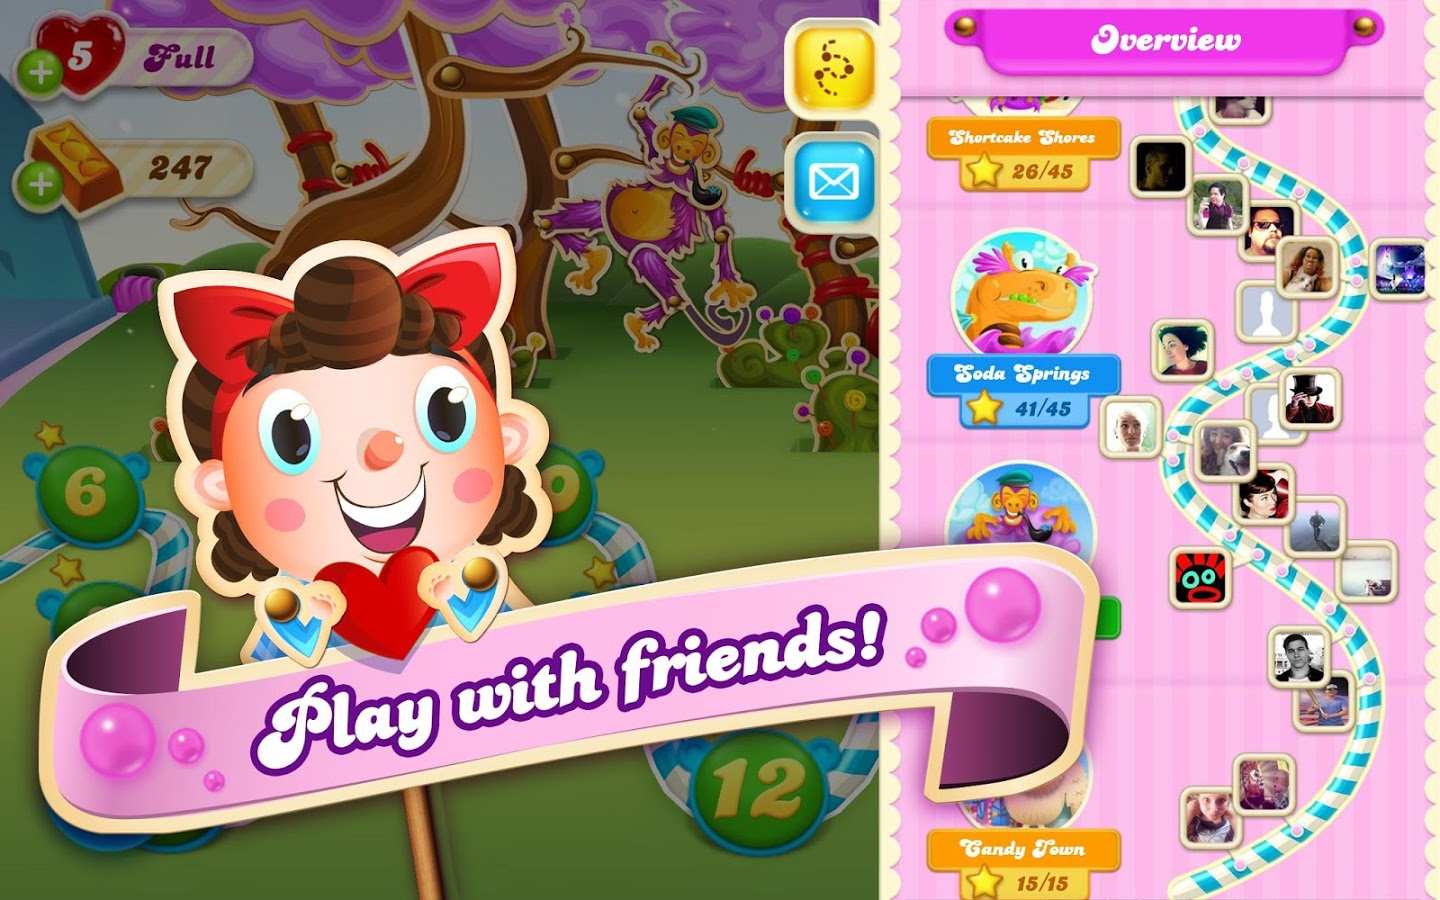 Candy Crush Soda Saga10